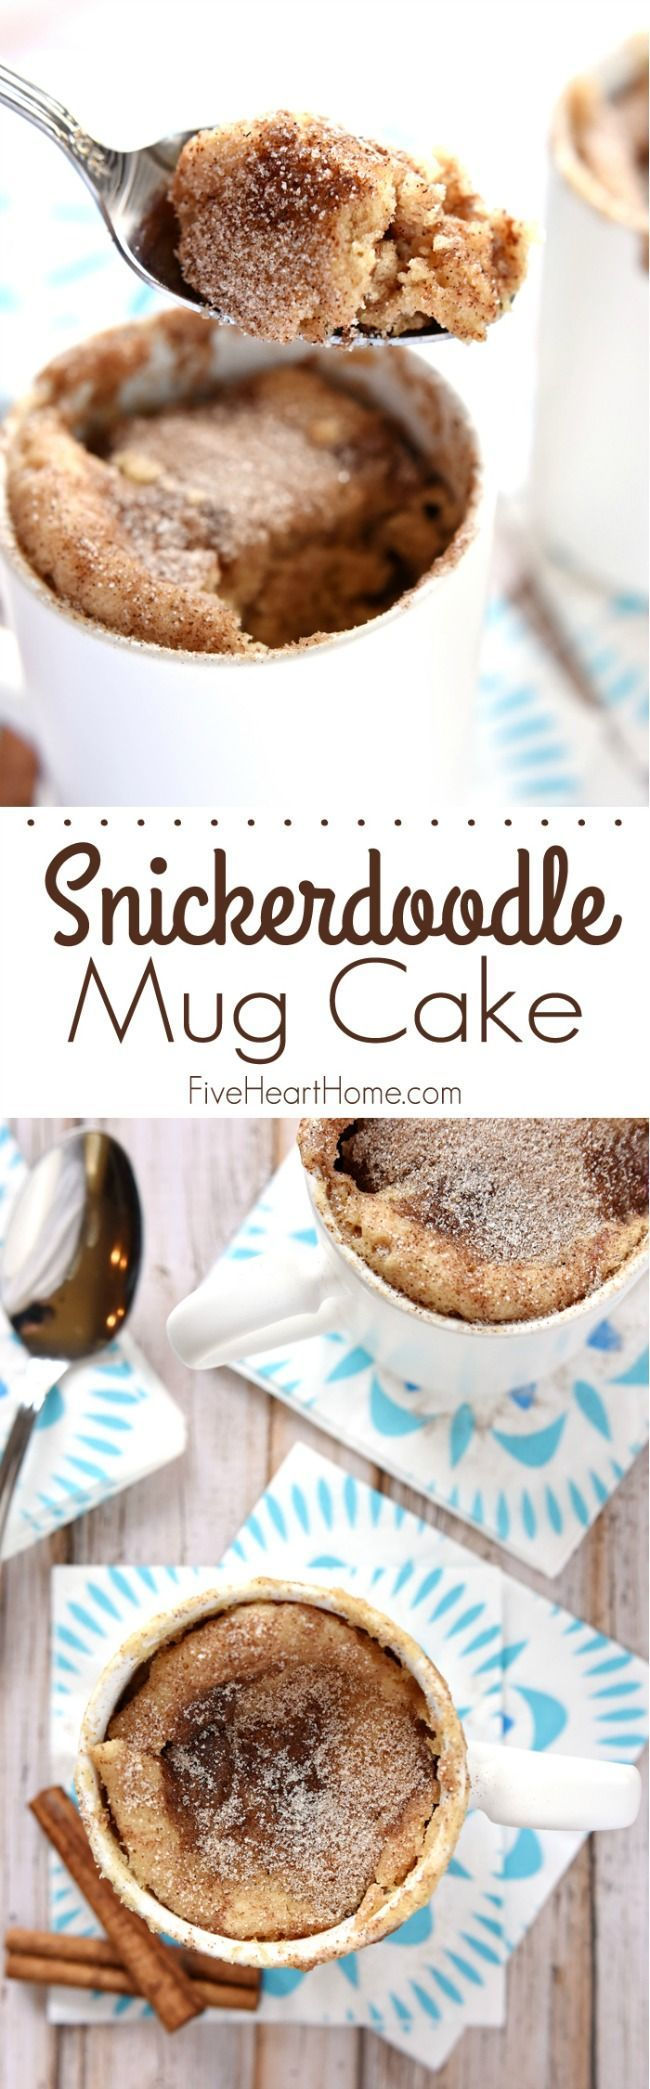 Here are The 11 Best Mug Cake Recipes we could find that left us drooling. We pretty much want to try them all!